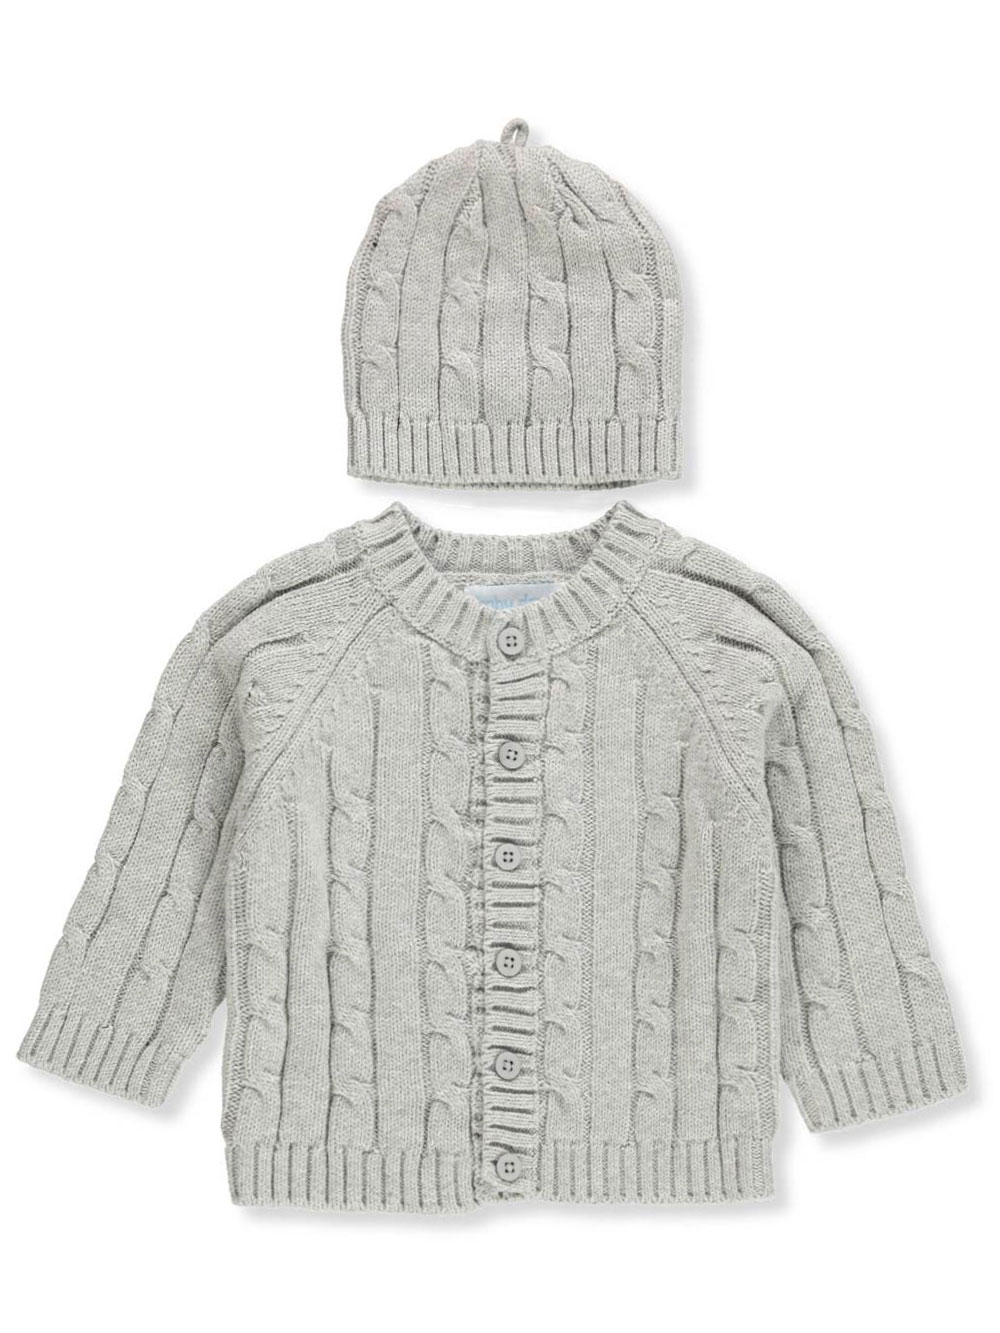 Baby Dove Cable Knit Cardigan /& Beanie Set